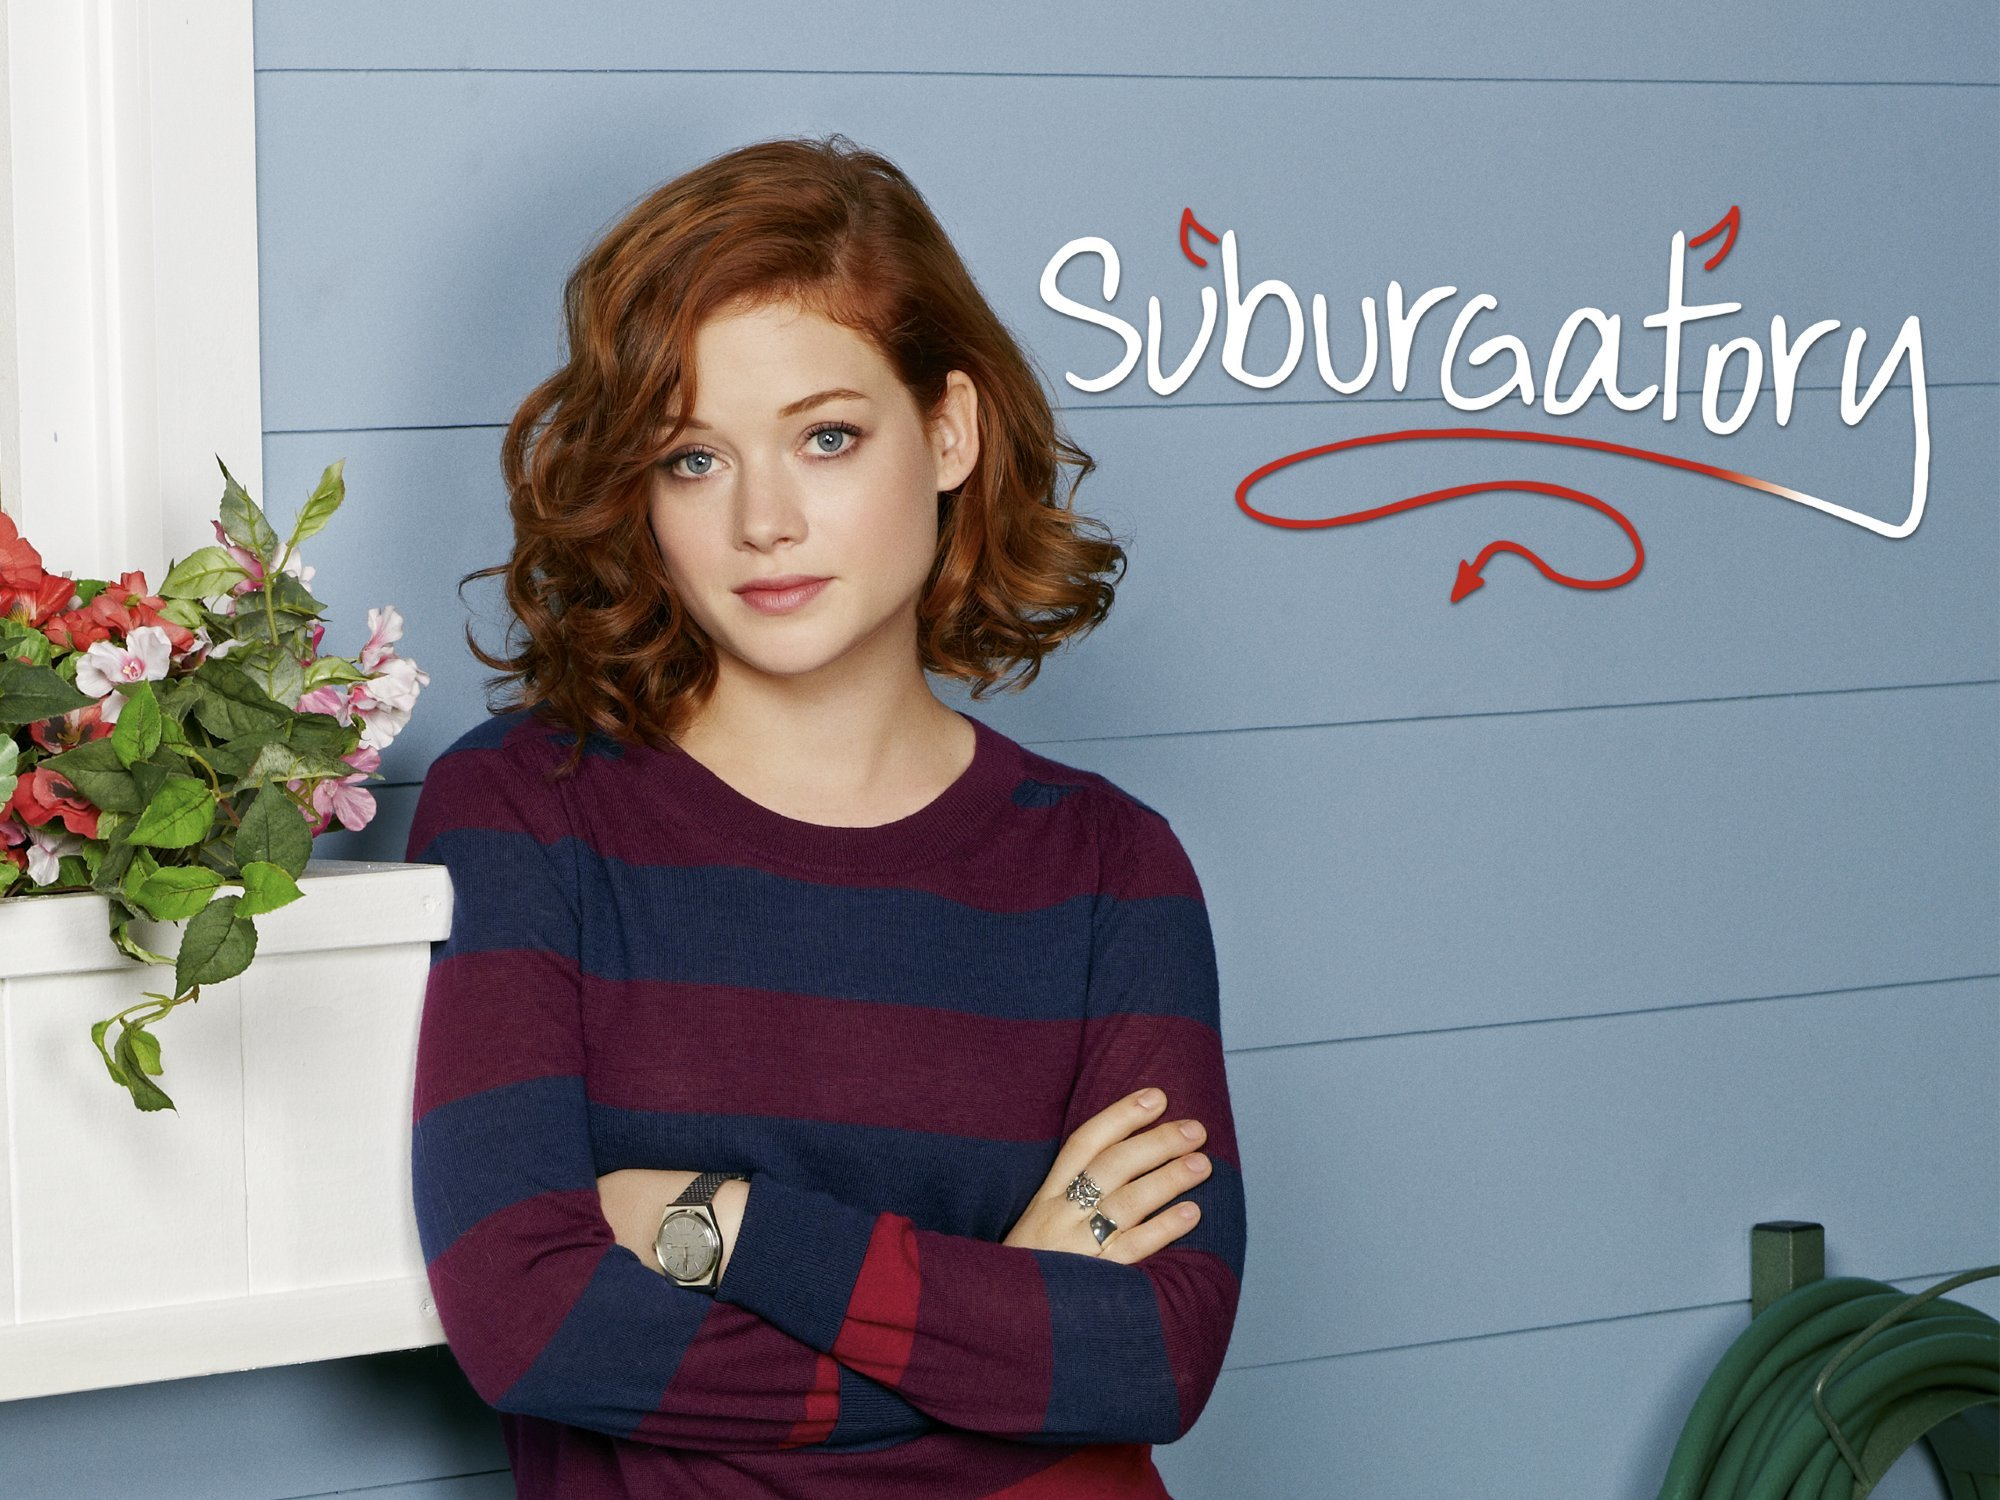 Image result for Suburgatory